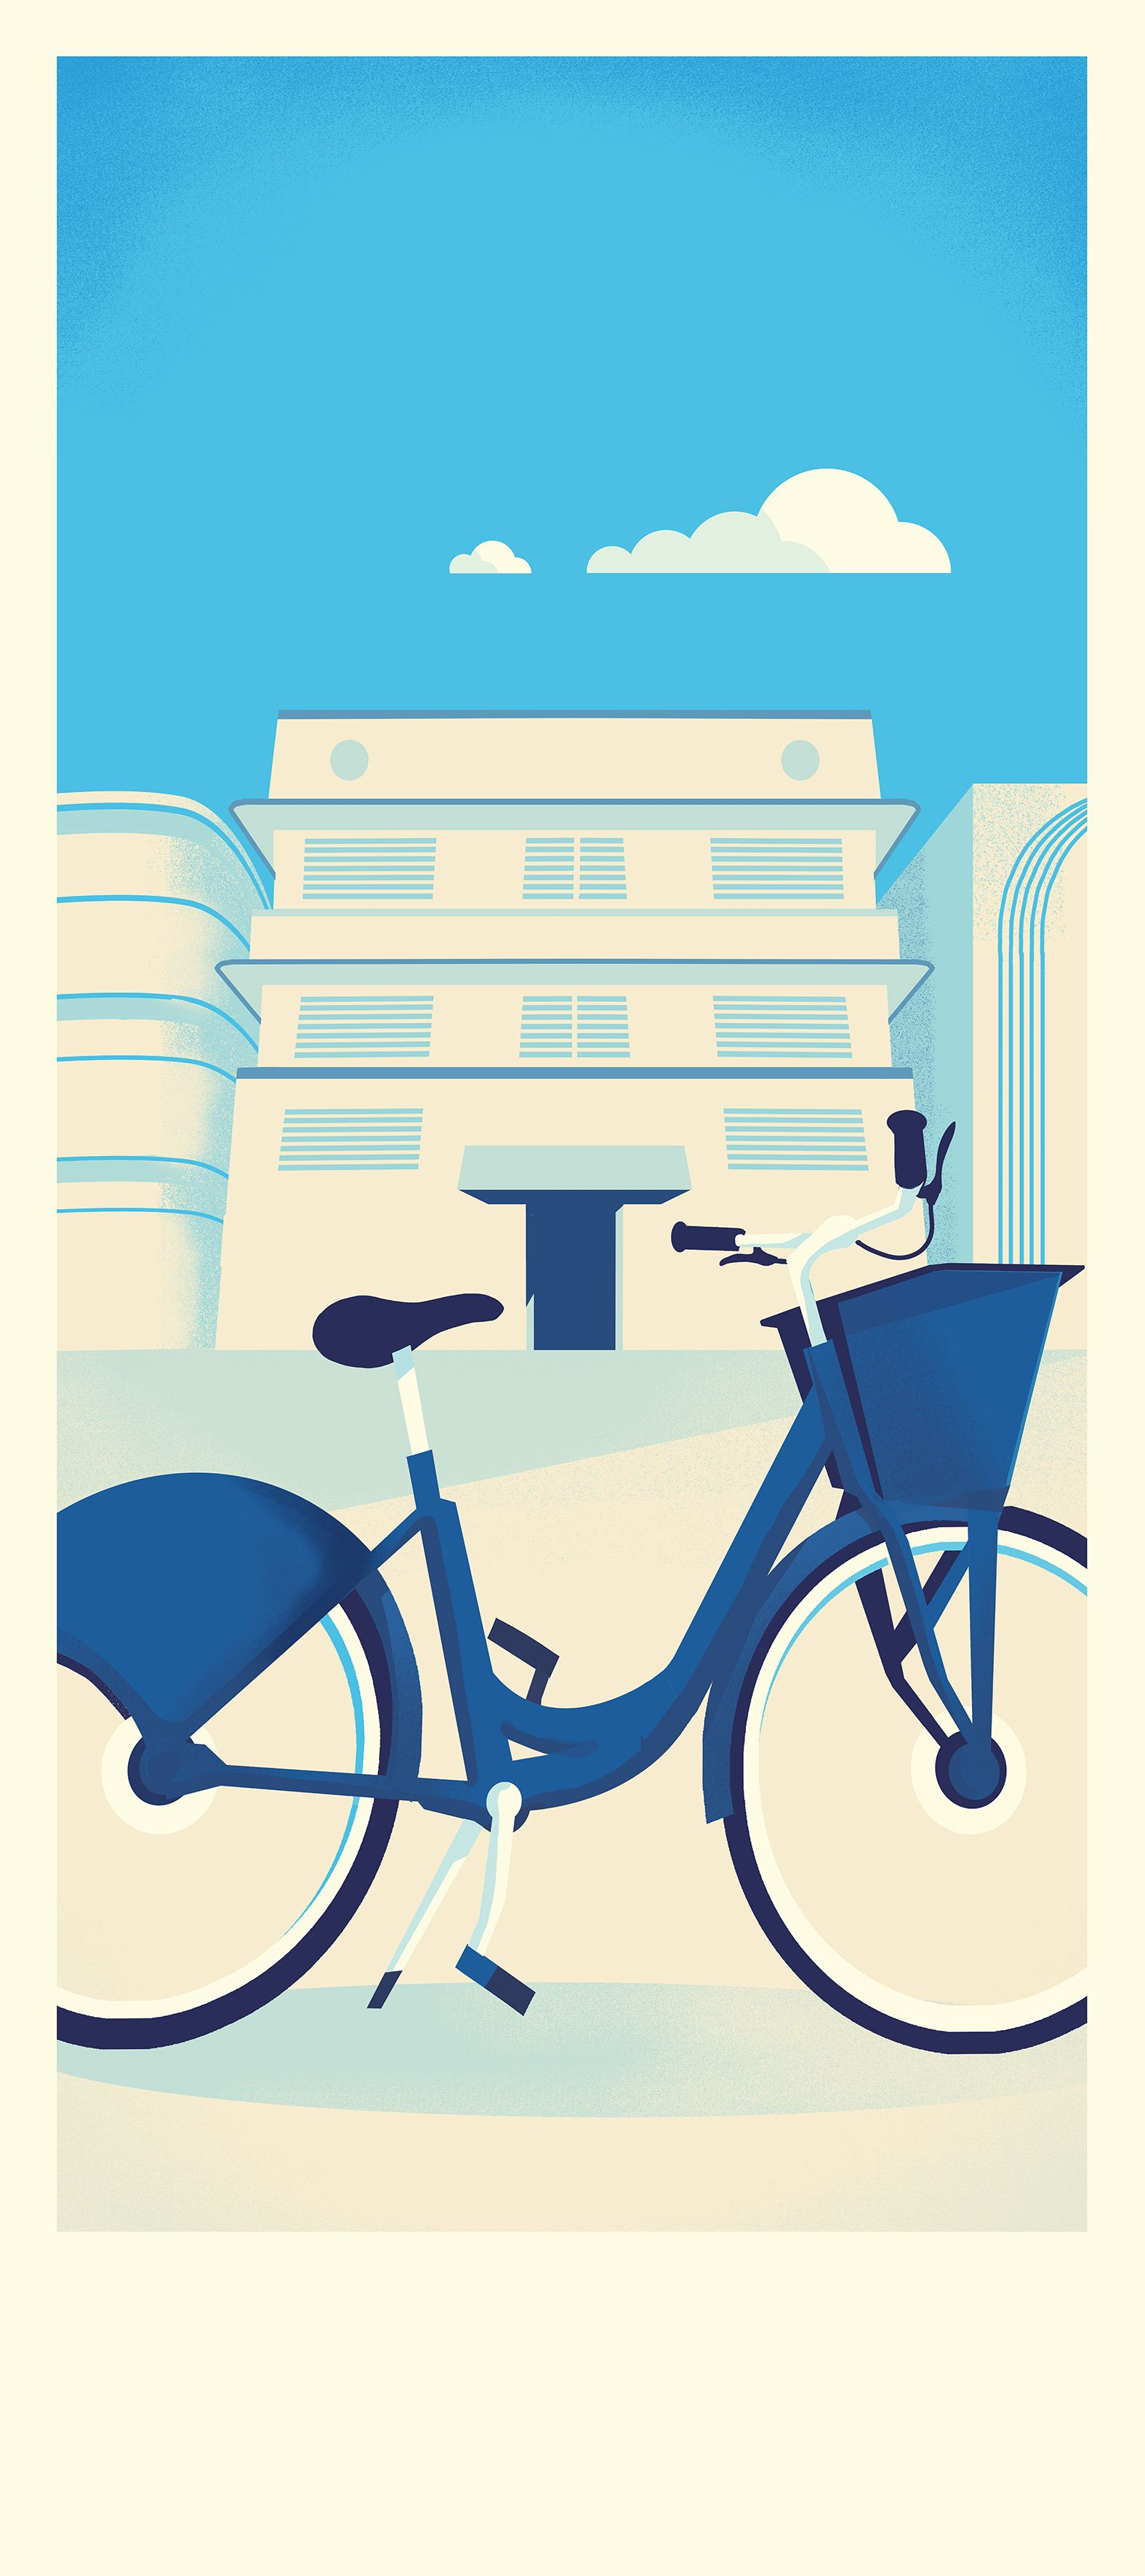 Citi Bike Miami >> Citi Bike Miami By Pietari Posti Pietari Posti Bike Illustration